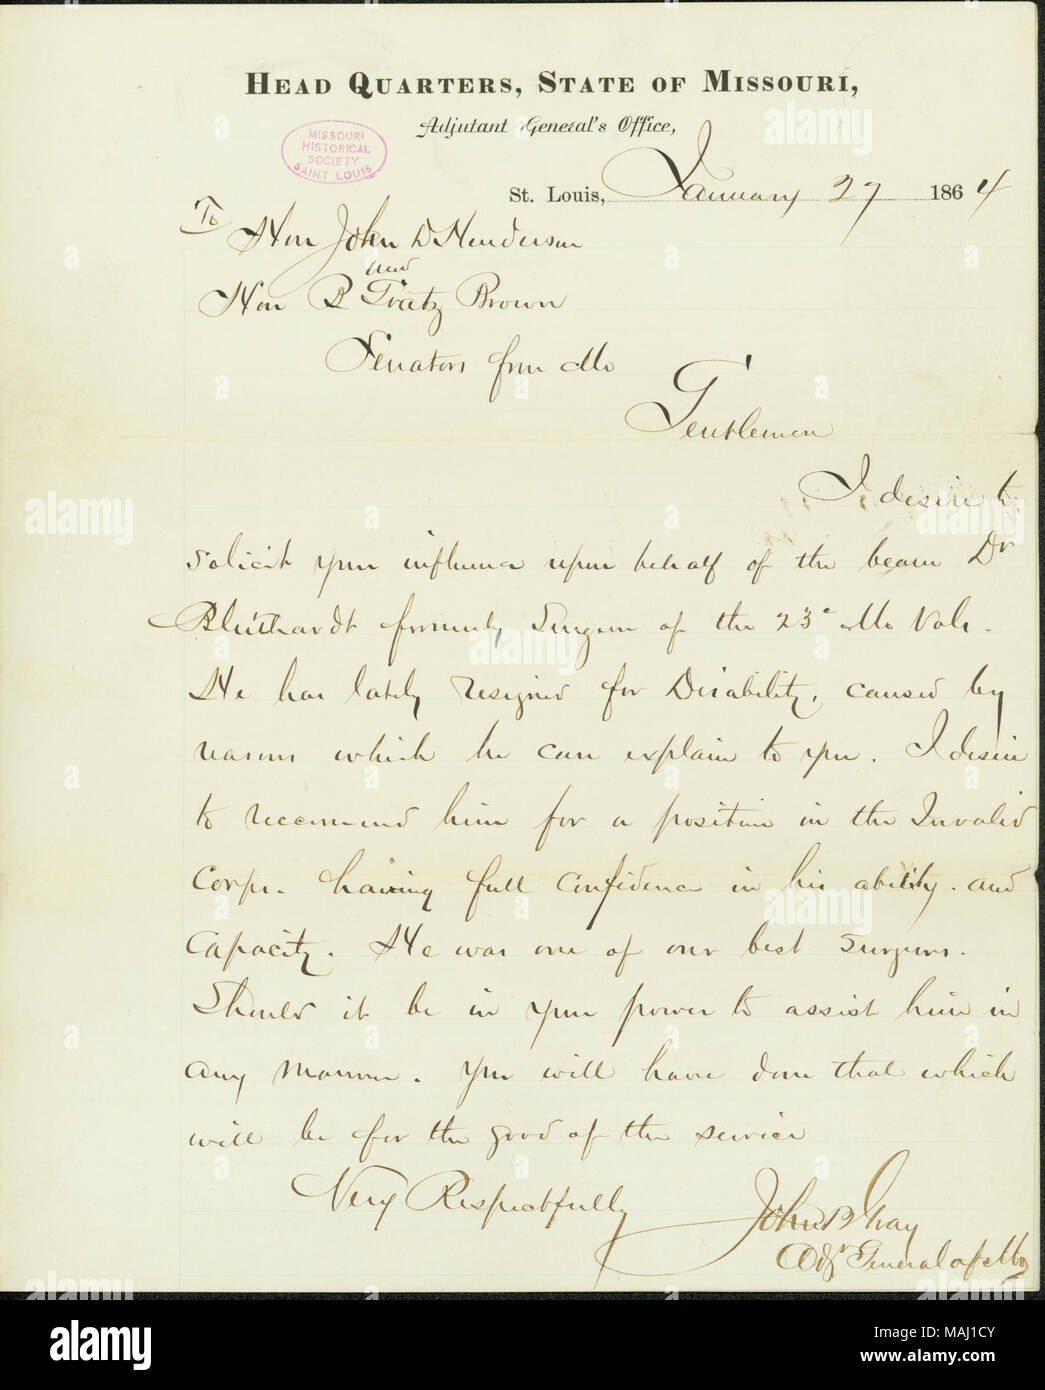 Solicits recommendations from henderson and brown for theodore j solicits recommendations from henderson and brown for theodore j bluthardts appointment in the invalid corps includes note on verso from henderson thecheapjerseys Choice Image